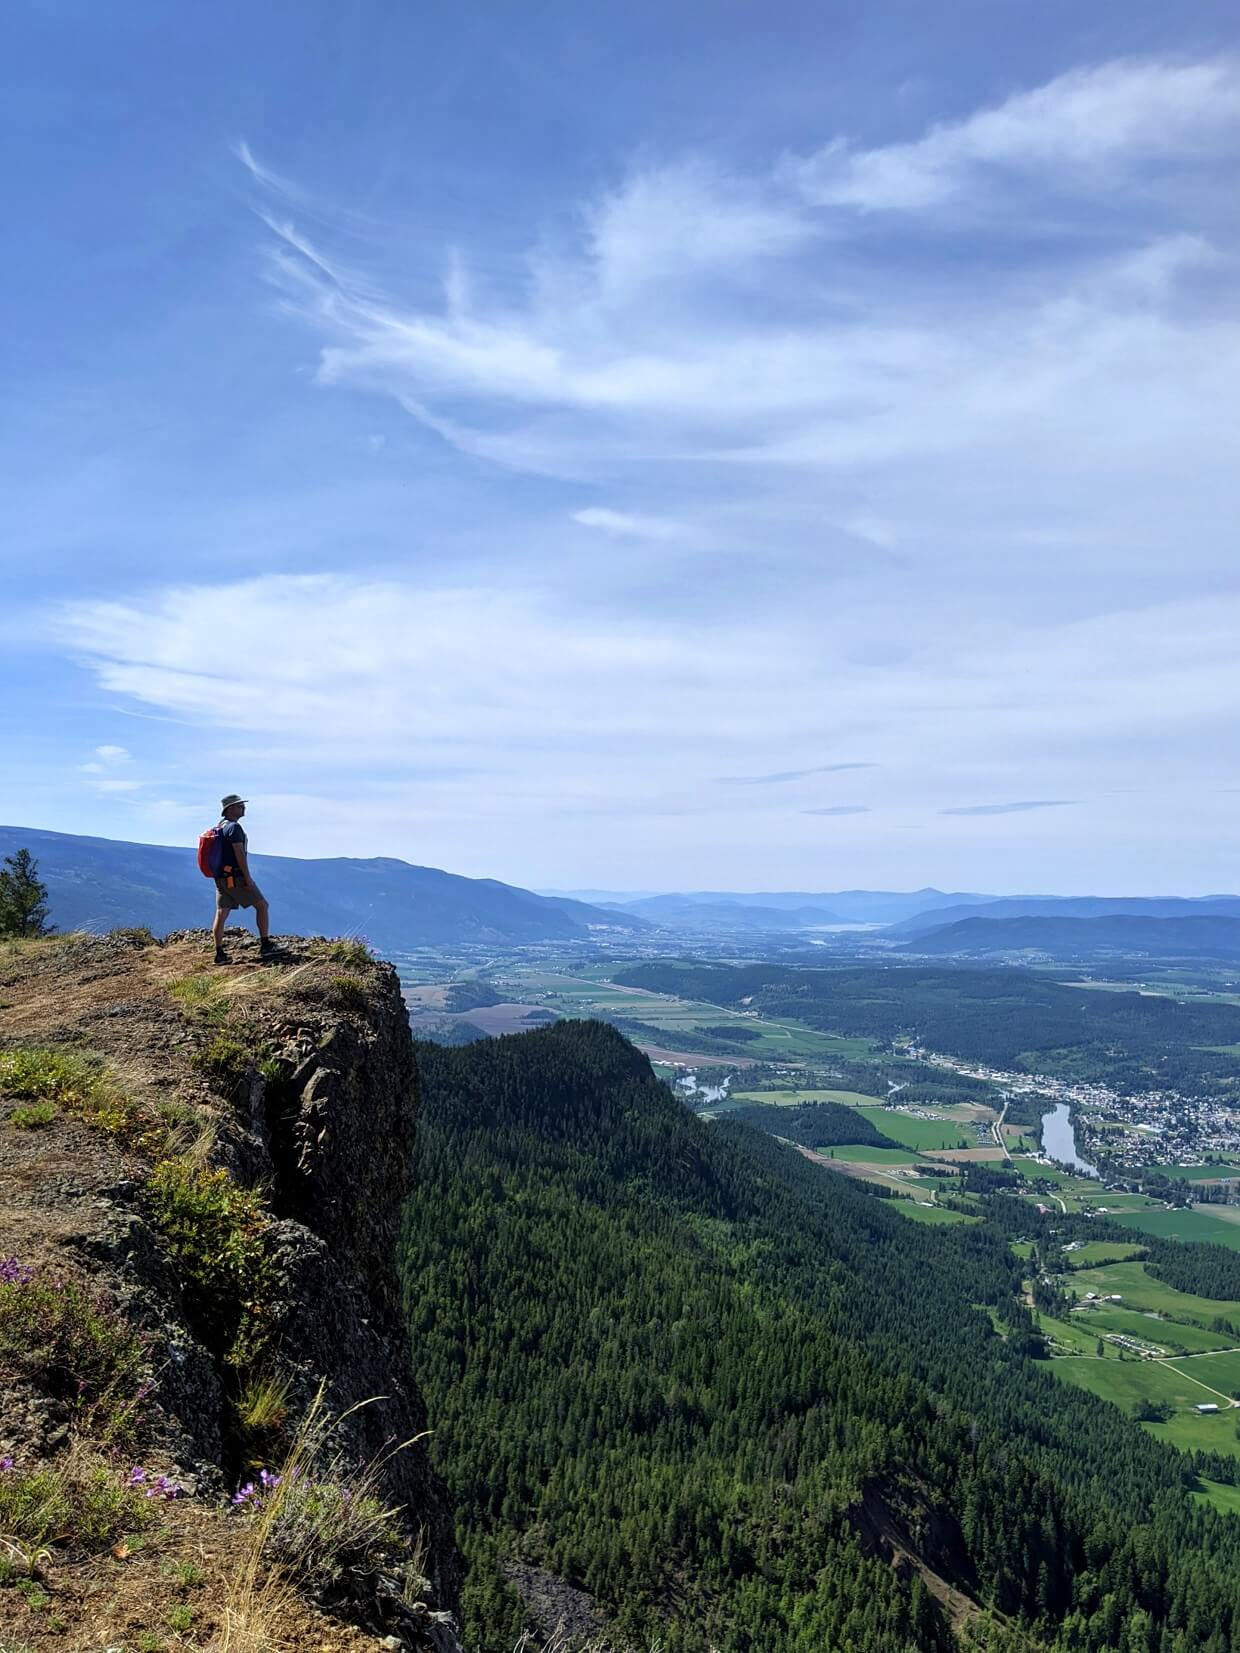 JR stands on the edge of a ridge on the Enderby Cliffs Trail, looking out at views of rolling farmland and  the forest below plus a highway, the city of Vernon and Okanagan Lake